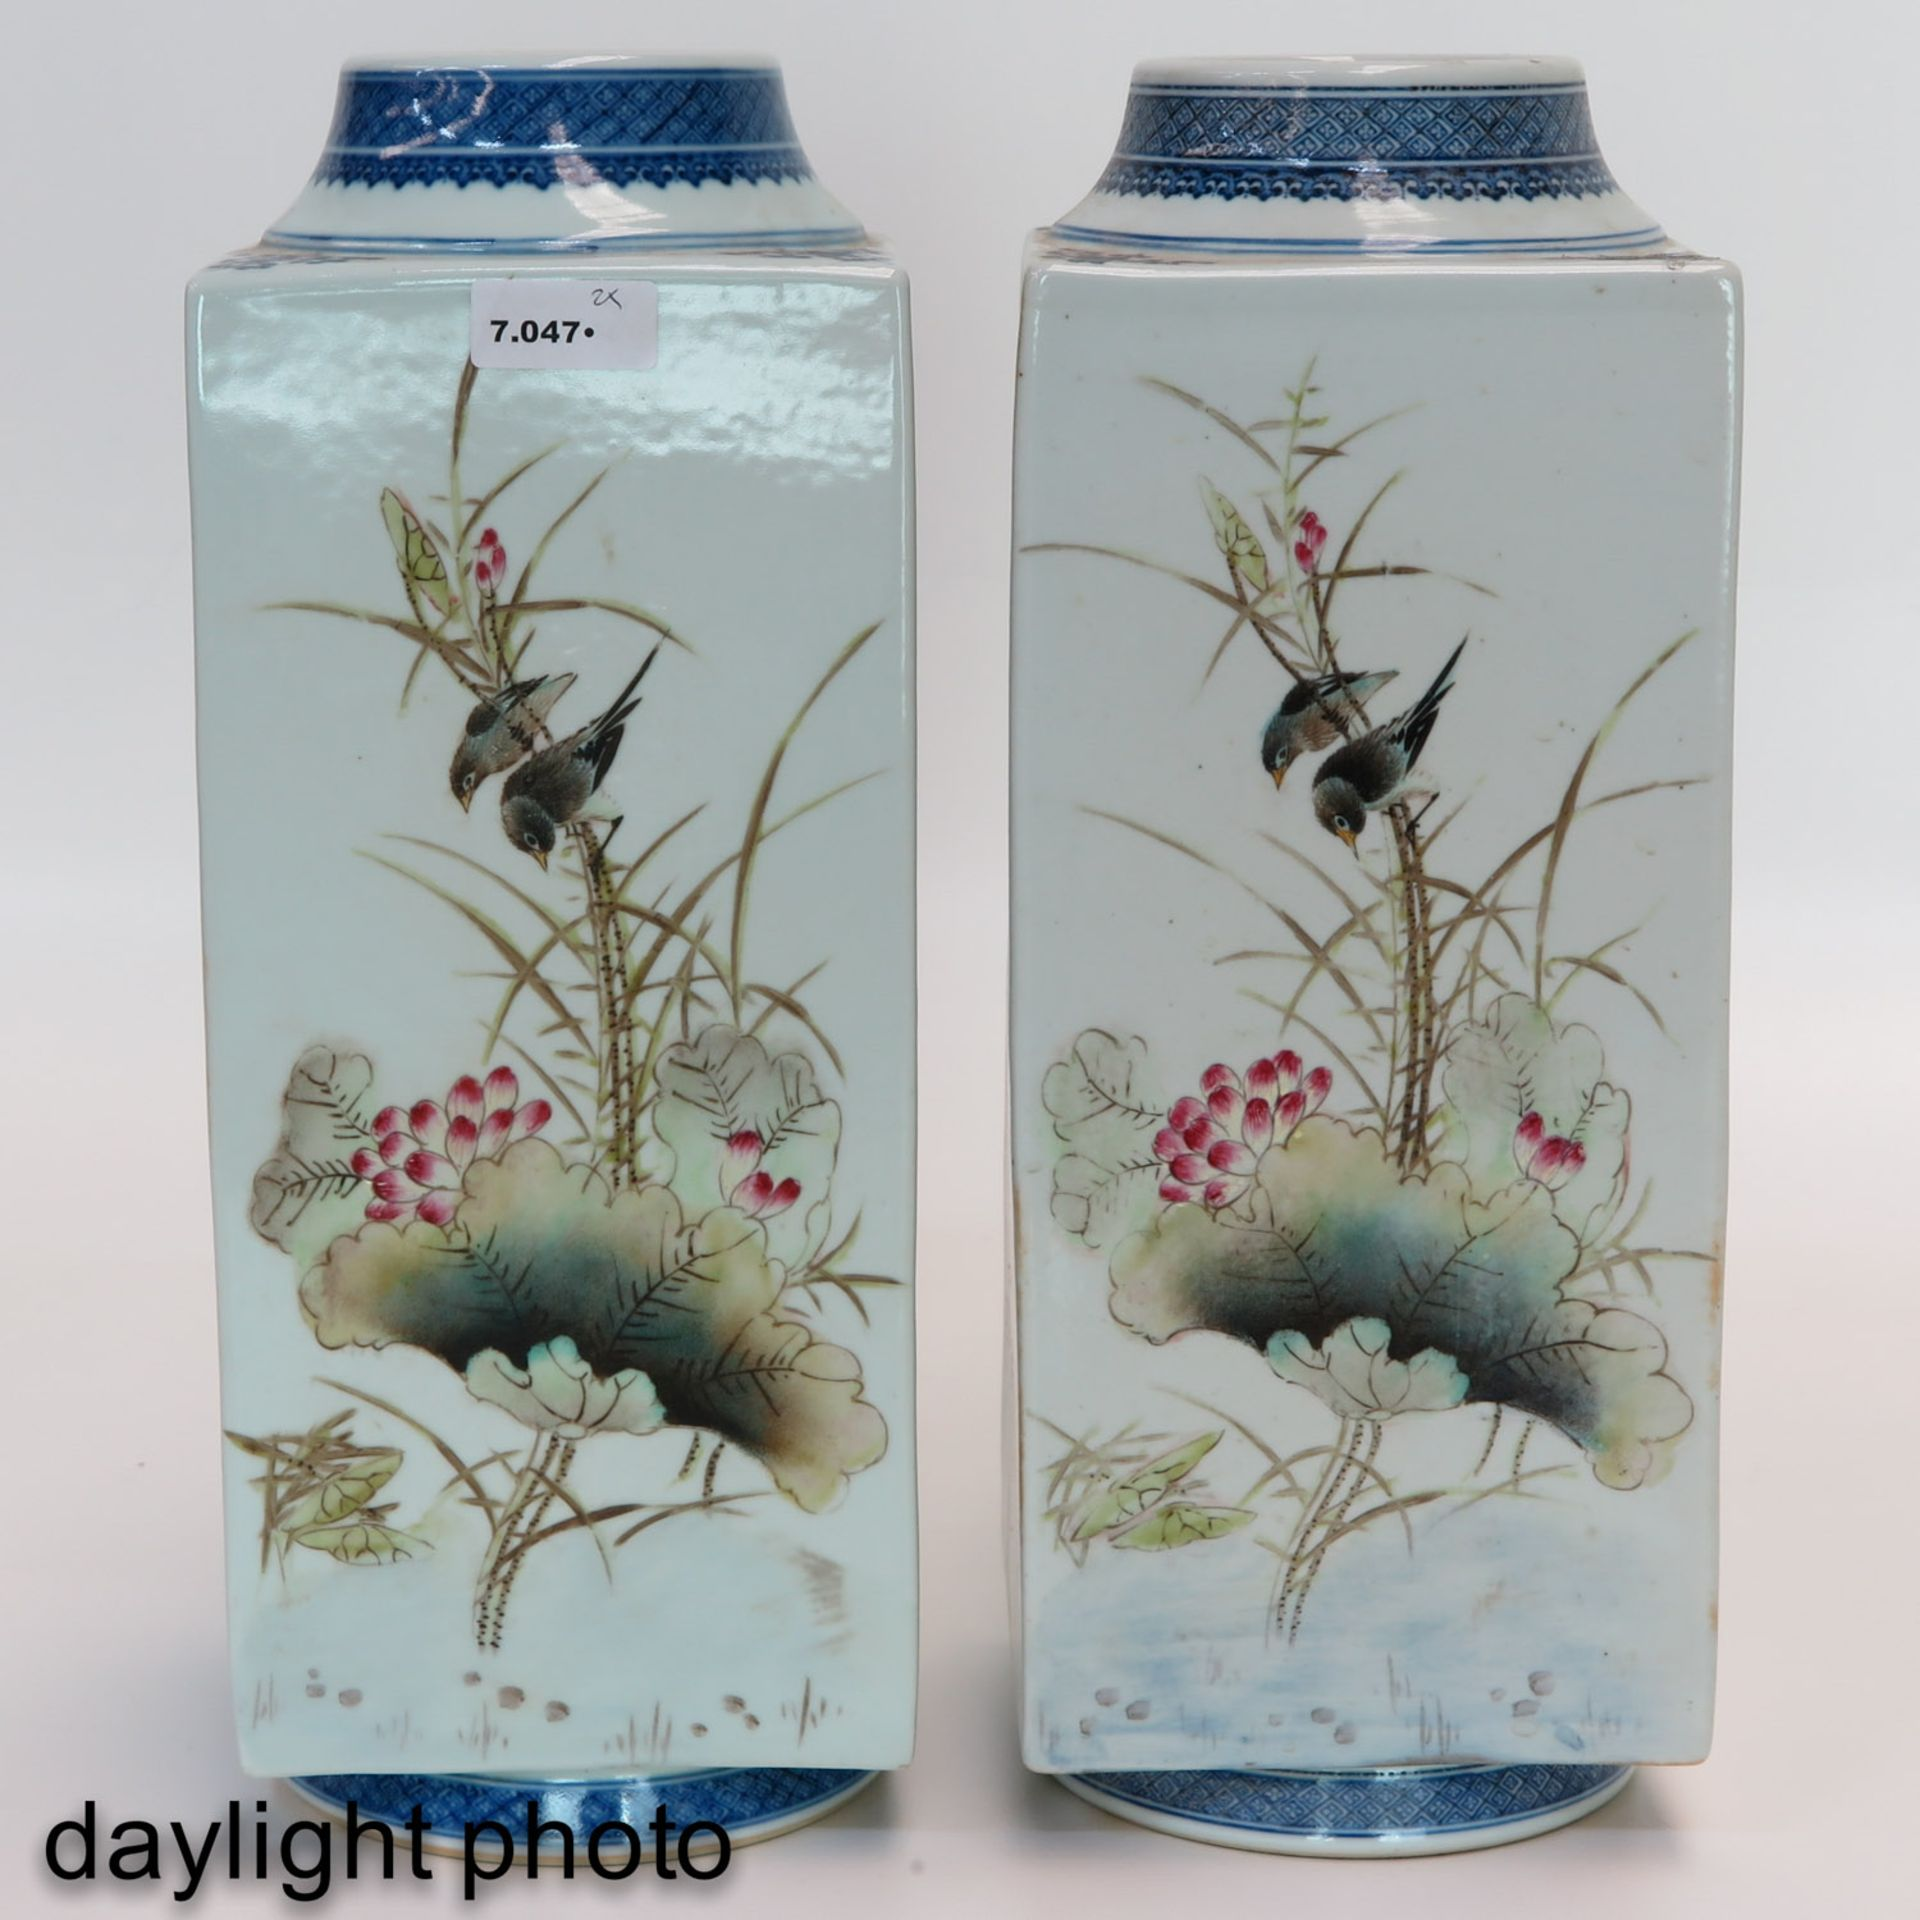 Los 7047 - A Pair of Square Famille Rose Vases